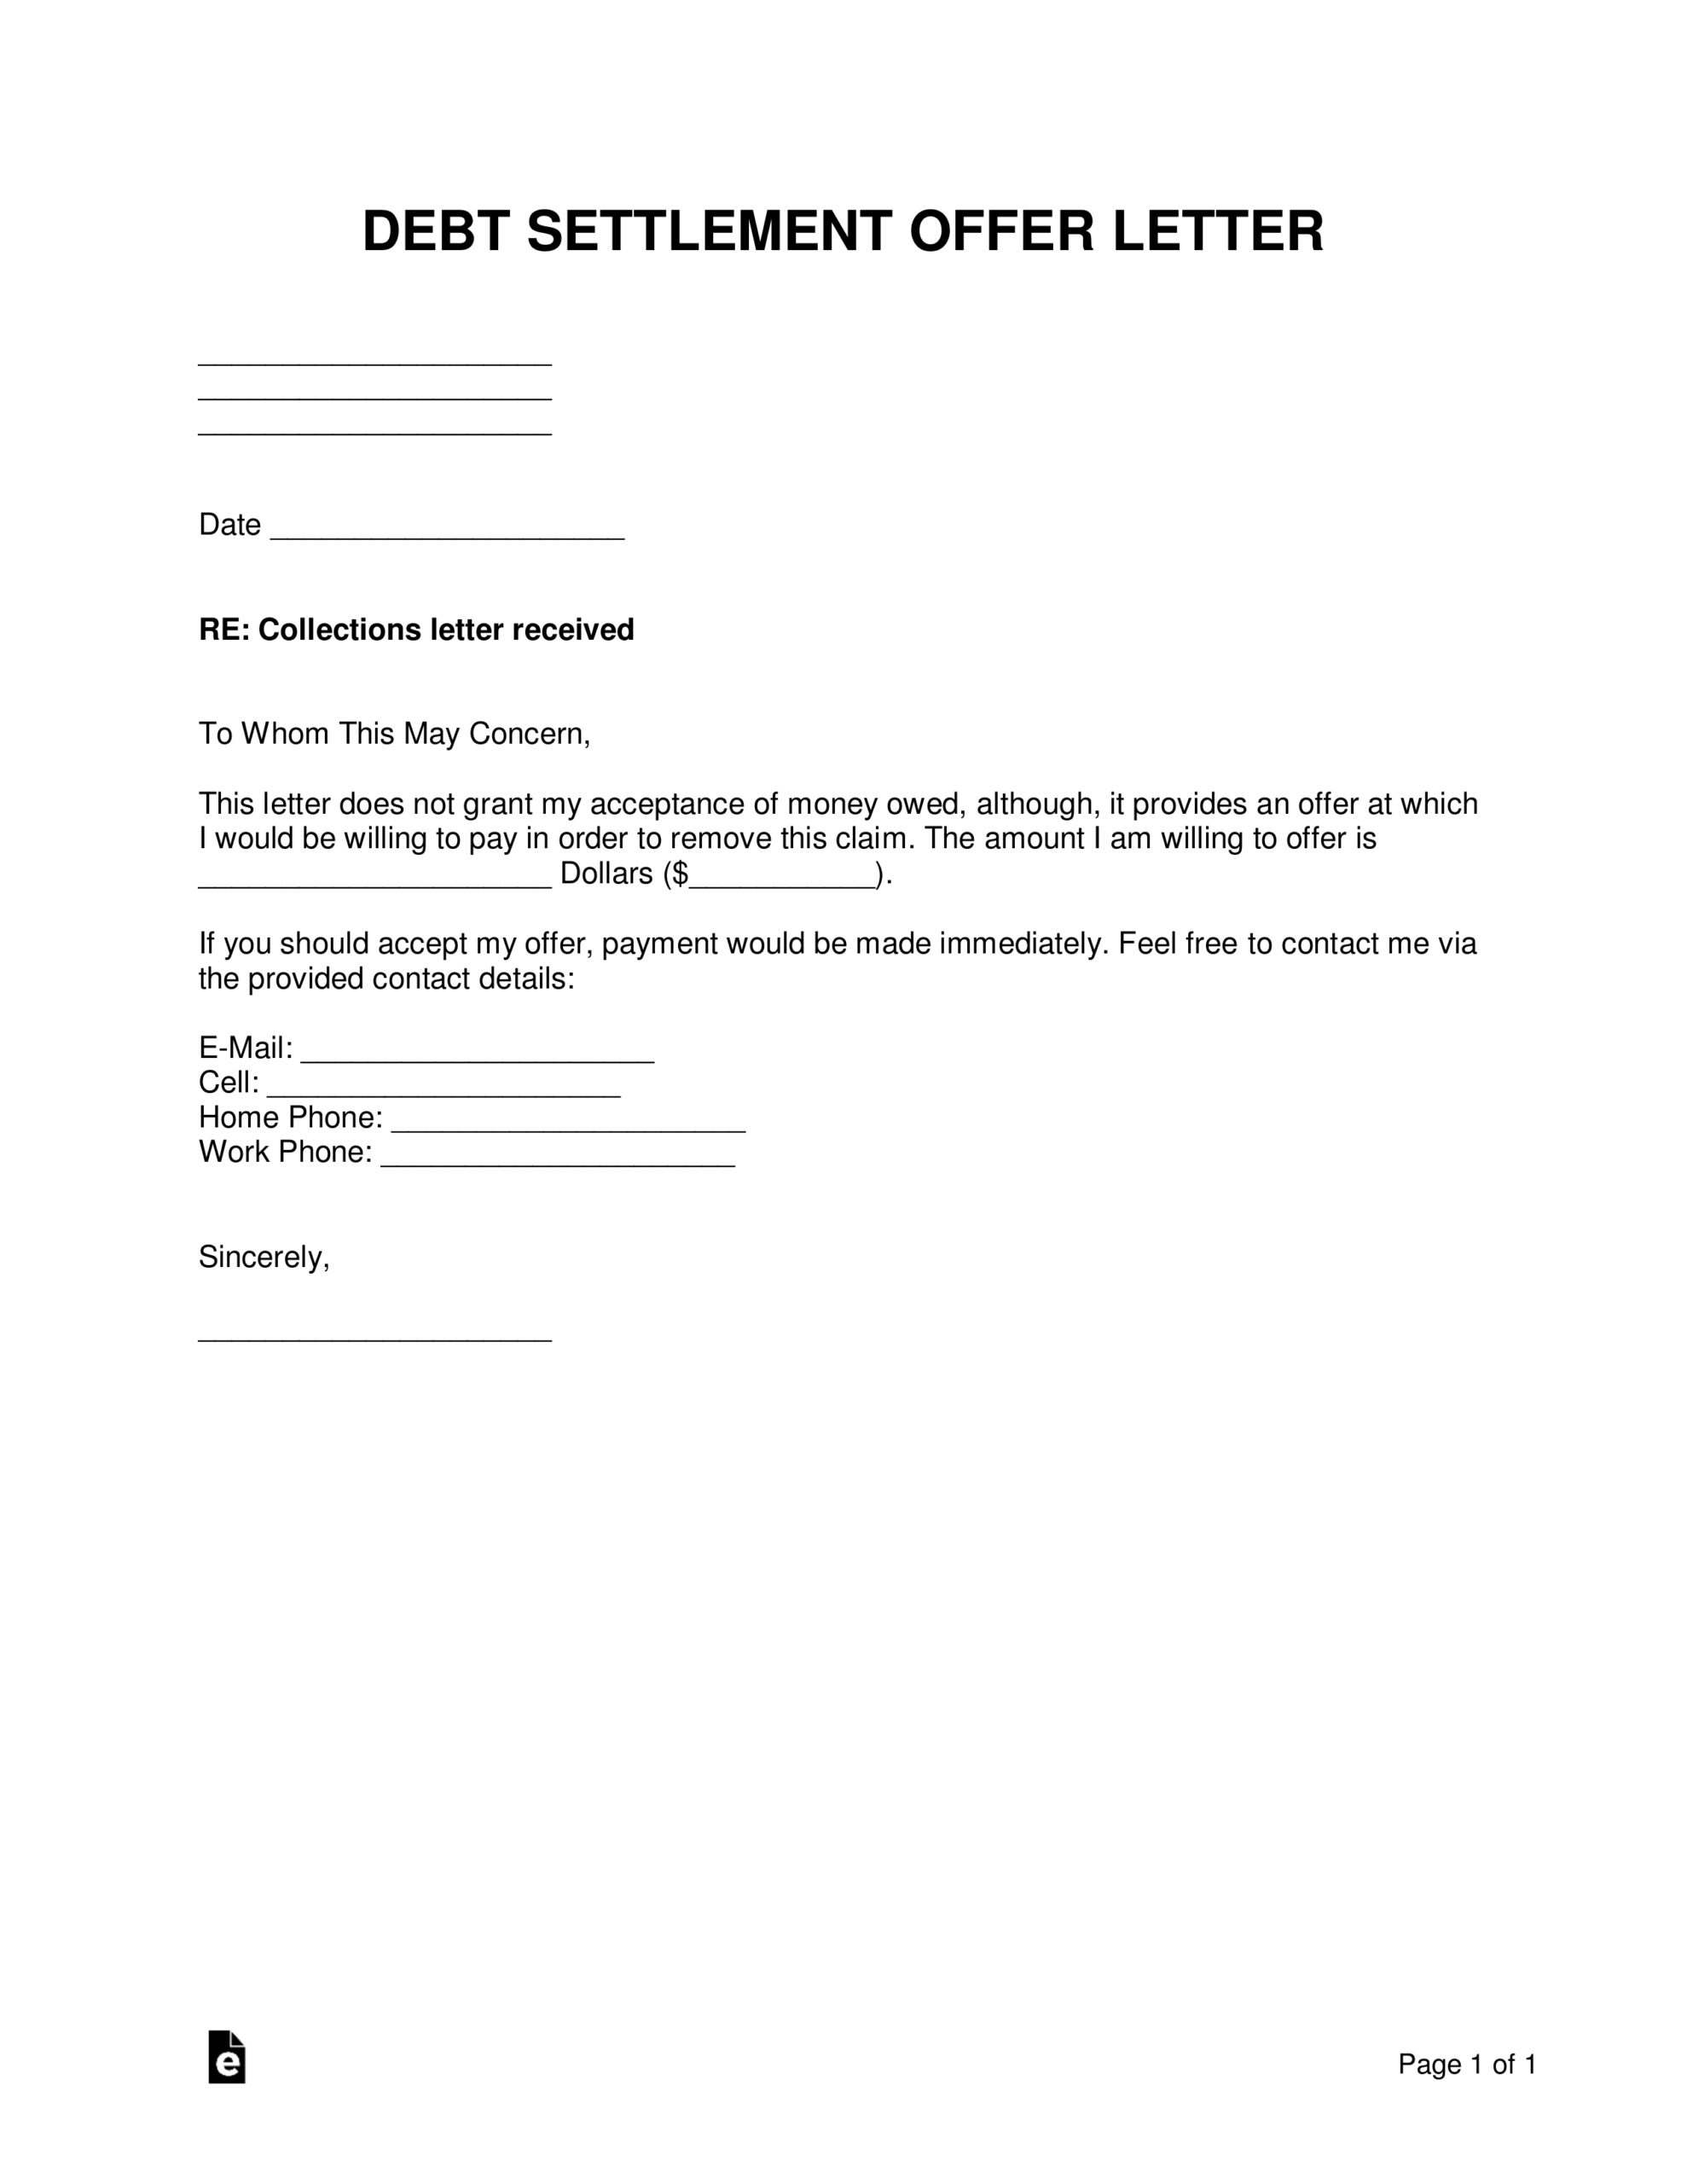 Sample Settlement Letters - Tunu.redmini.co With Debt Negotiation Letter Template